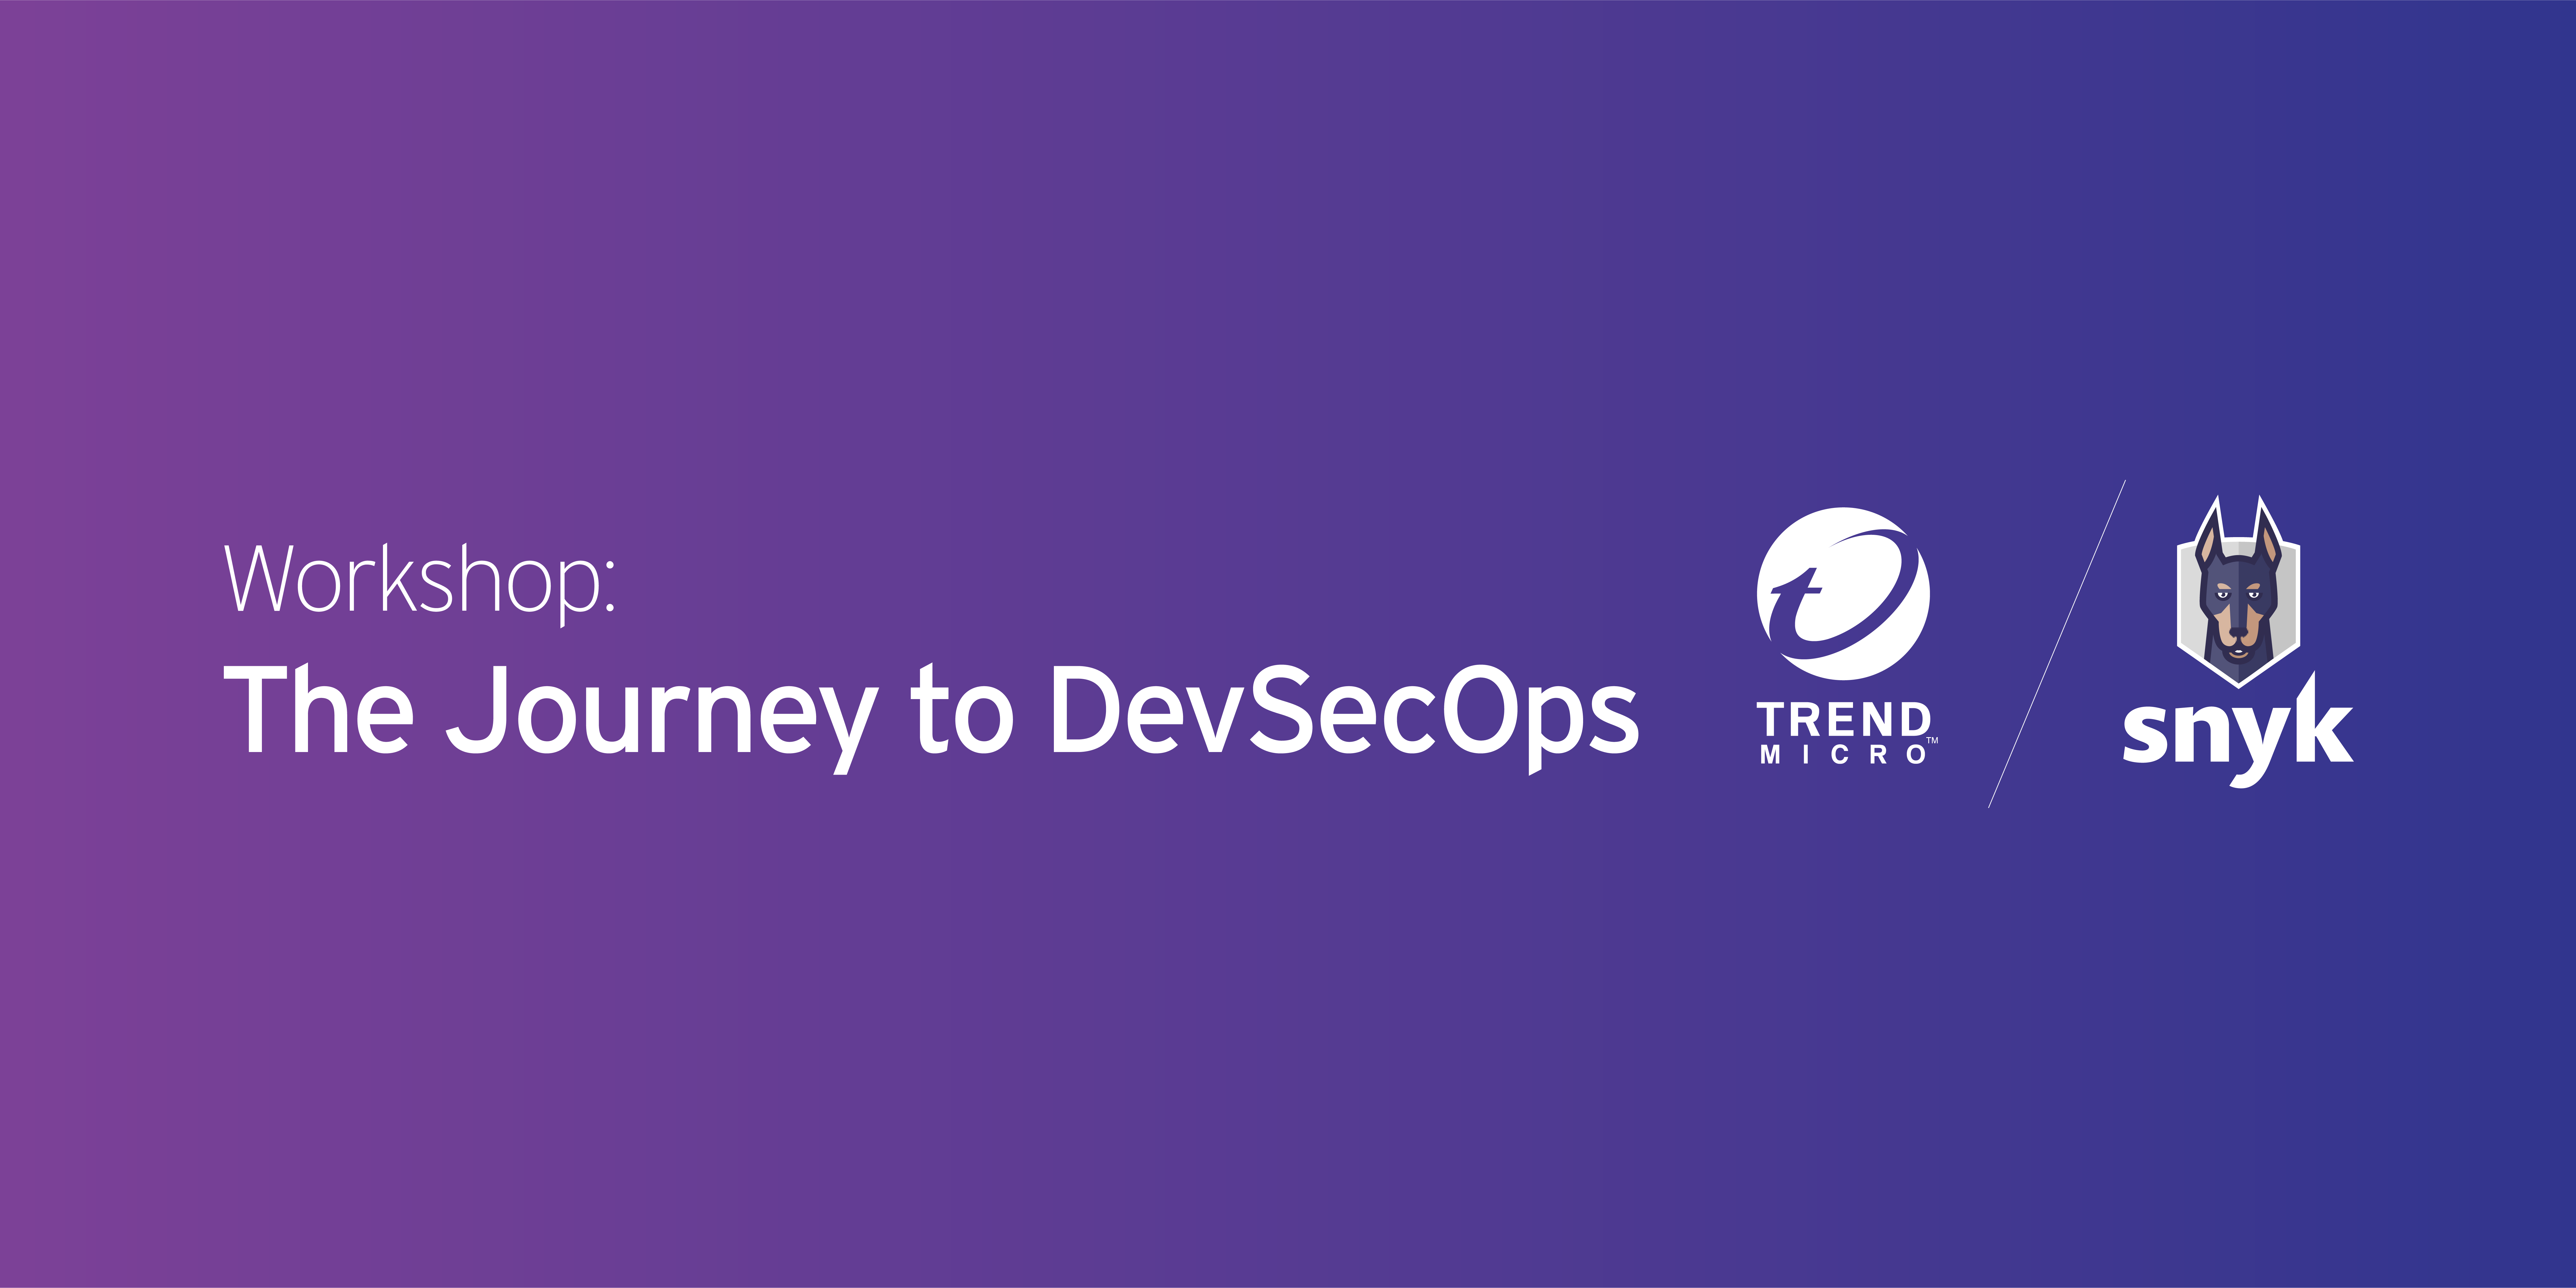 The Journey to DevSecOps